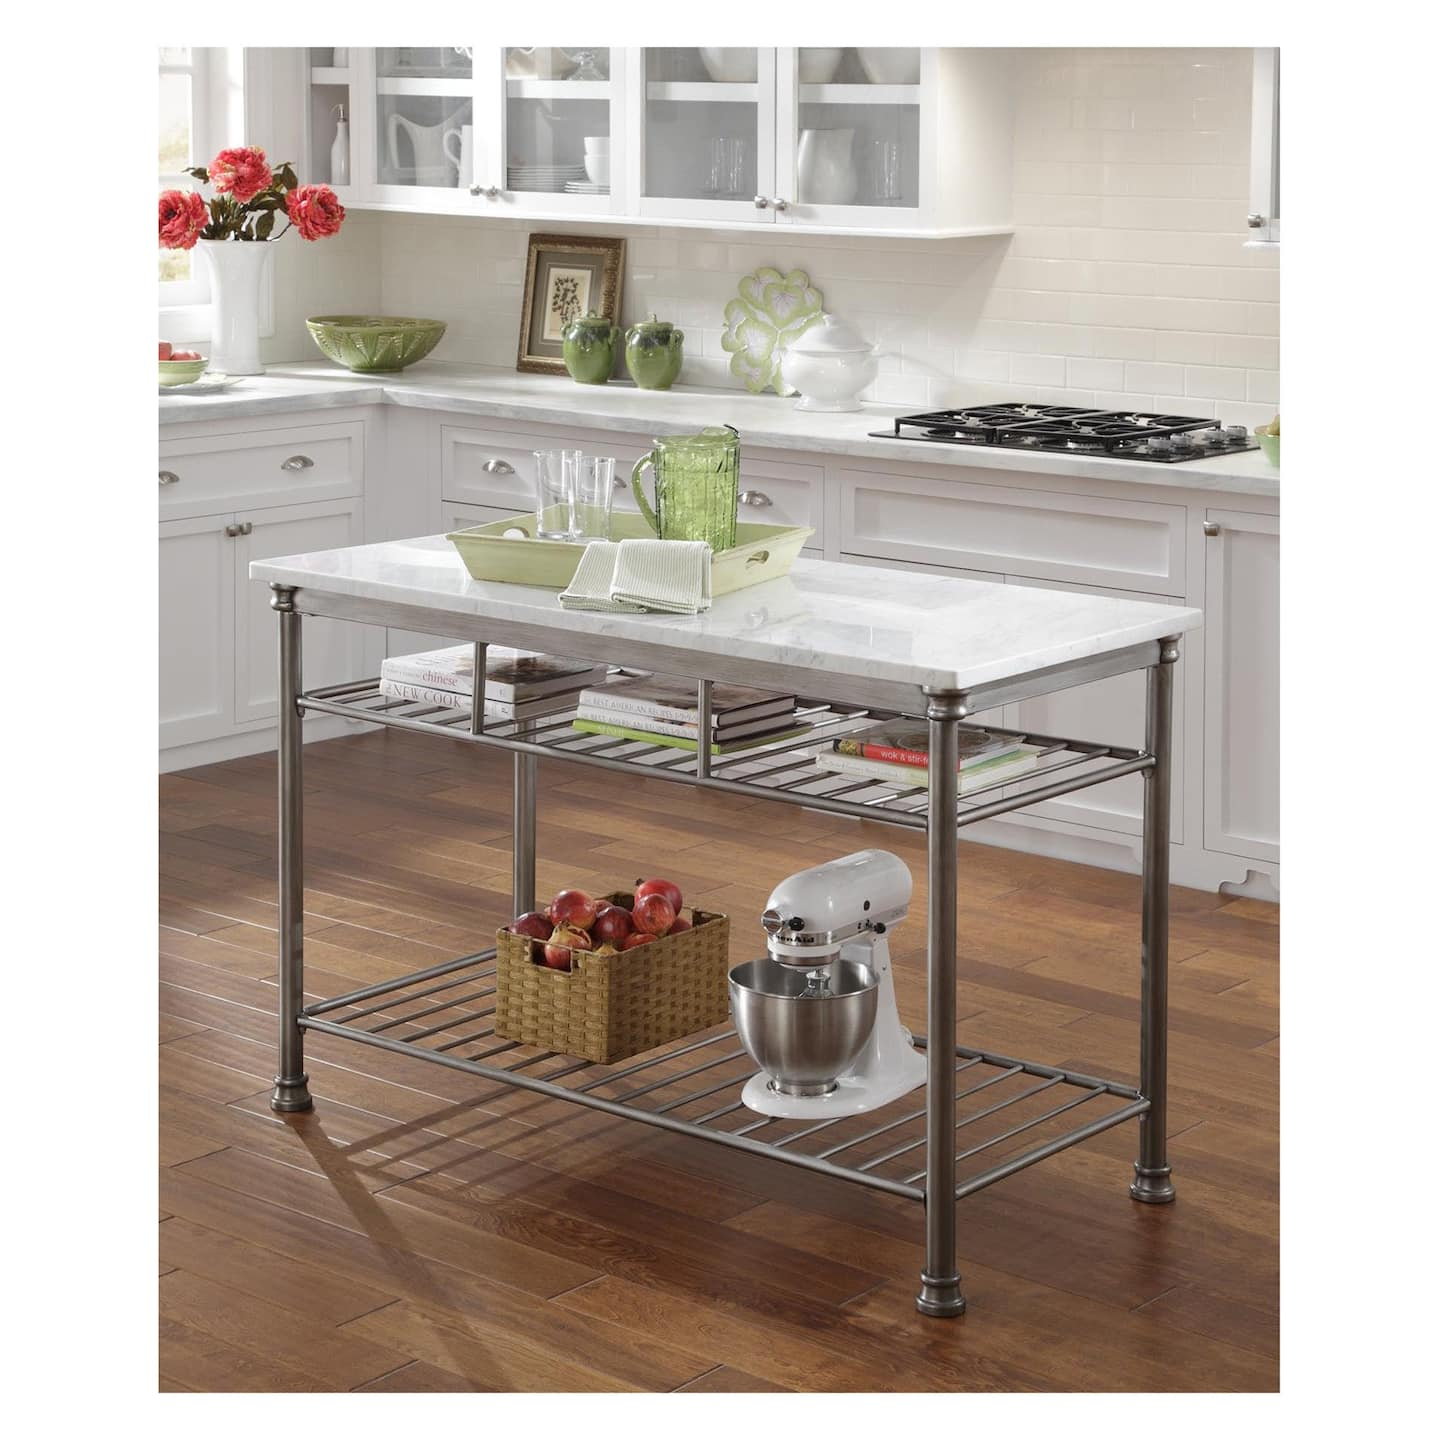 Small Kitchen Island Bench: Rolling Kitchen Islands And Kitchen Island Carts